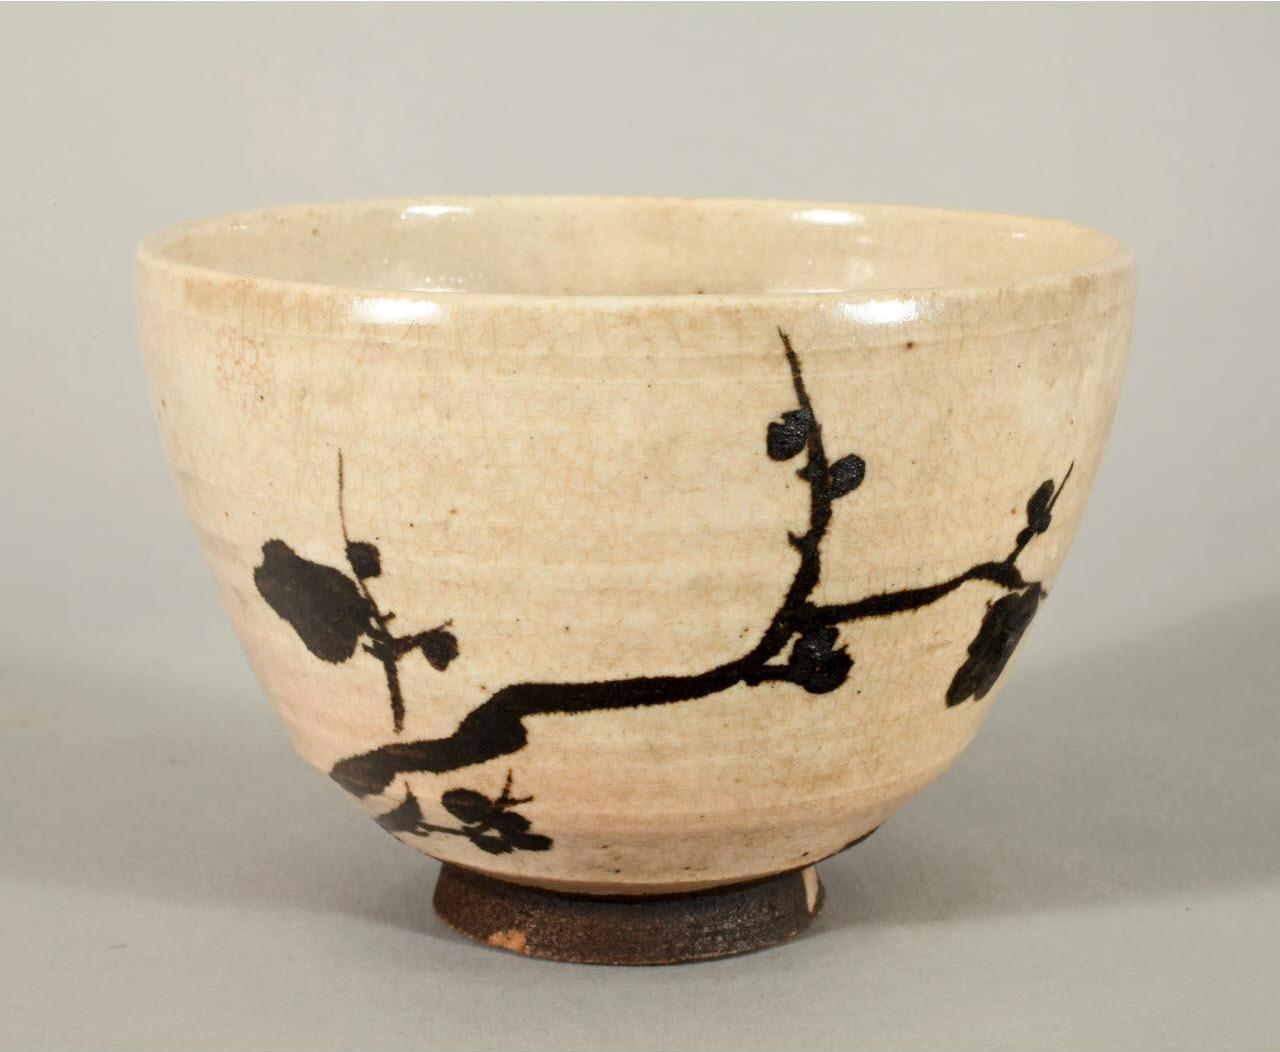 AMAM Community Day: Nature in Japanese Ceramics